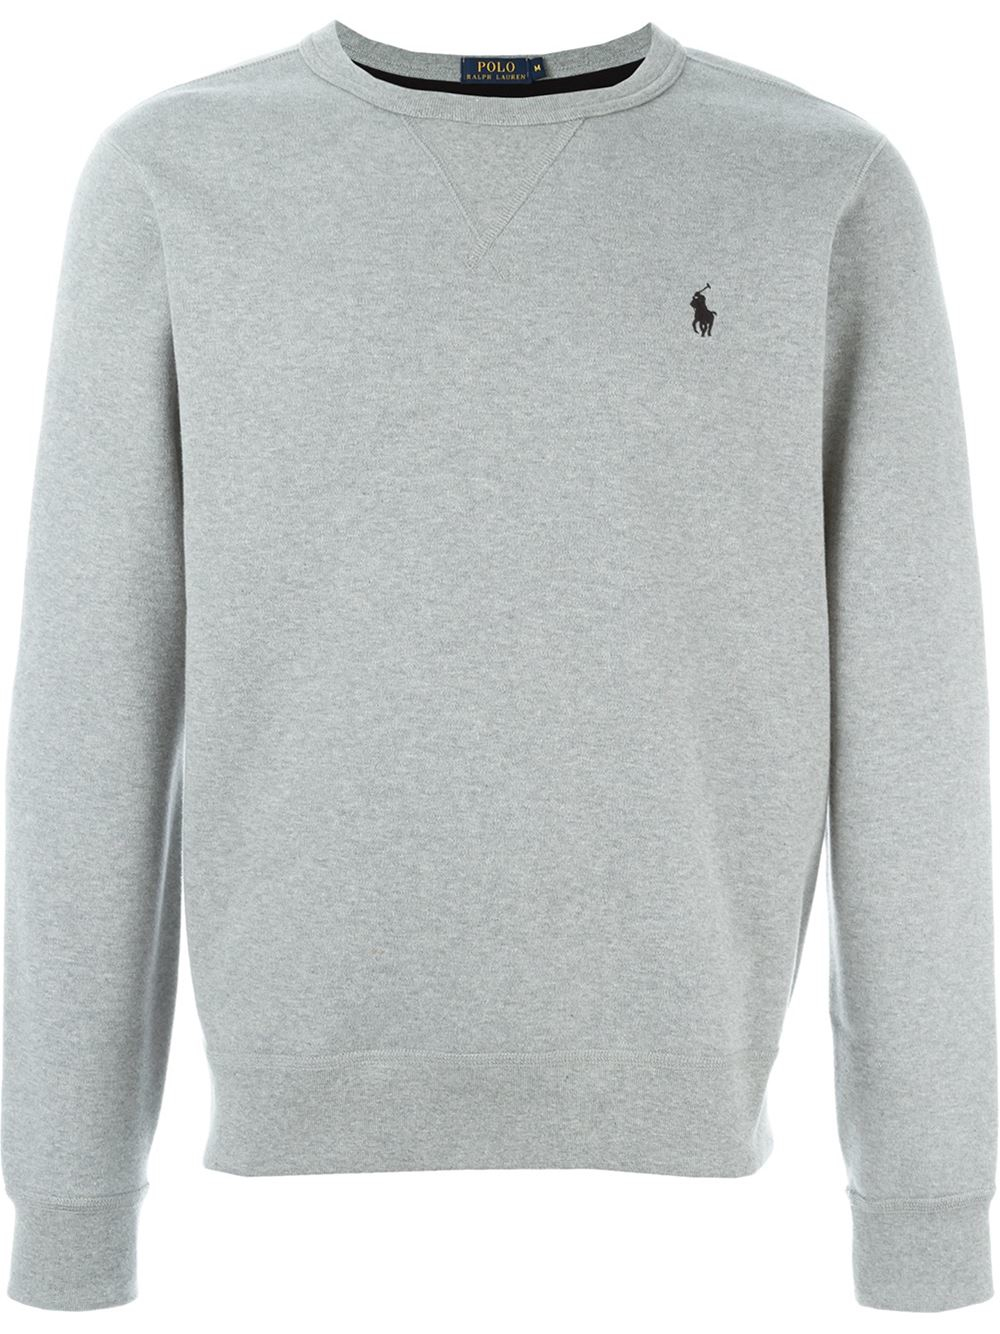 14a26c1aa Polo Ralph Lauren Crew Neck Sweatshirt in Gray for Men - Lyst